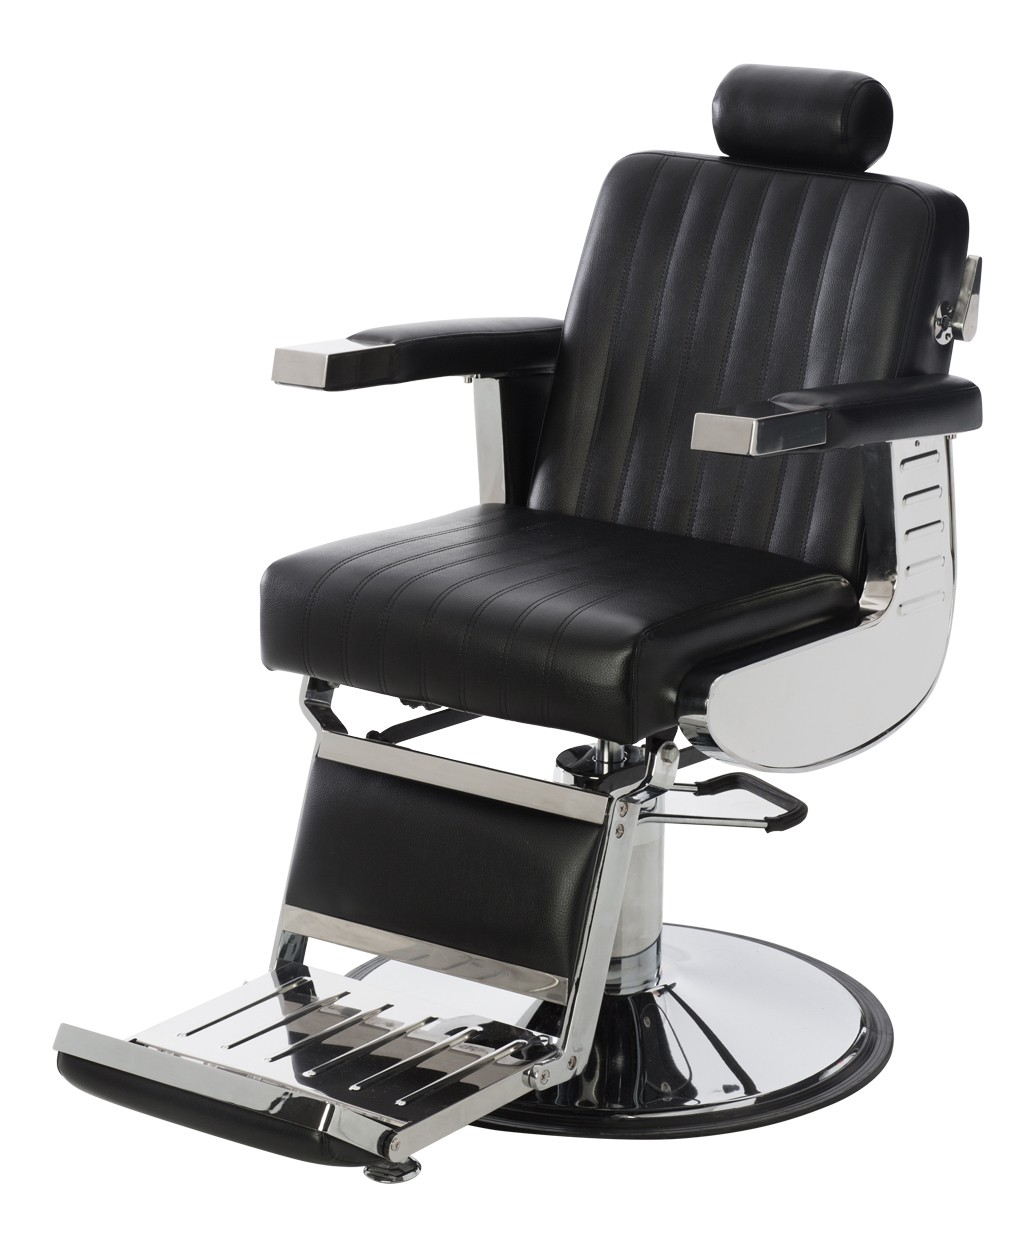 Shop Chairs Empire Professional Barber Chair